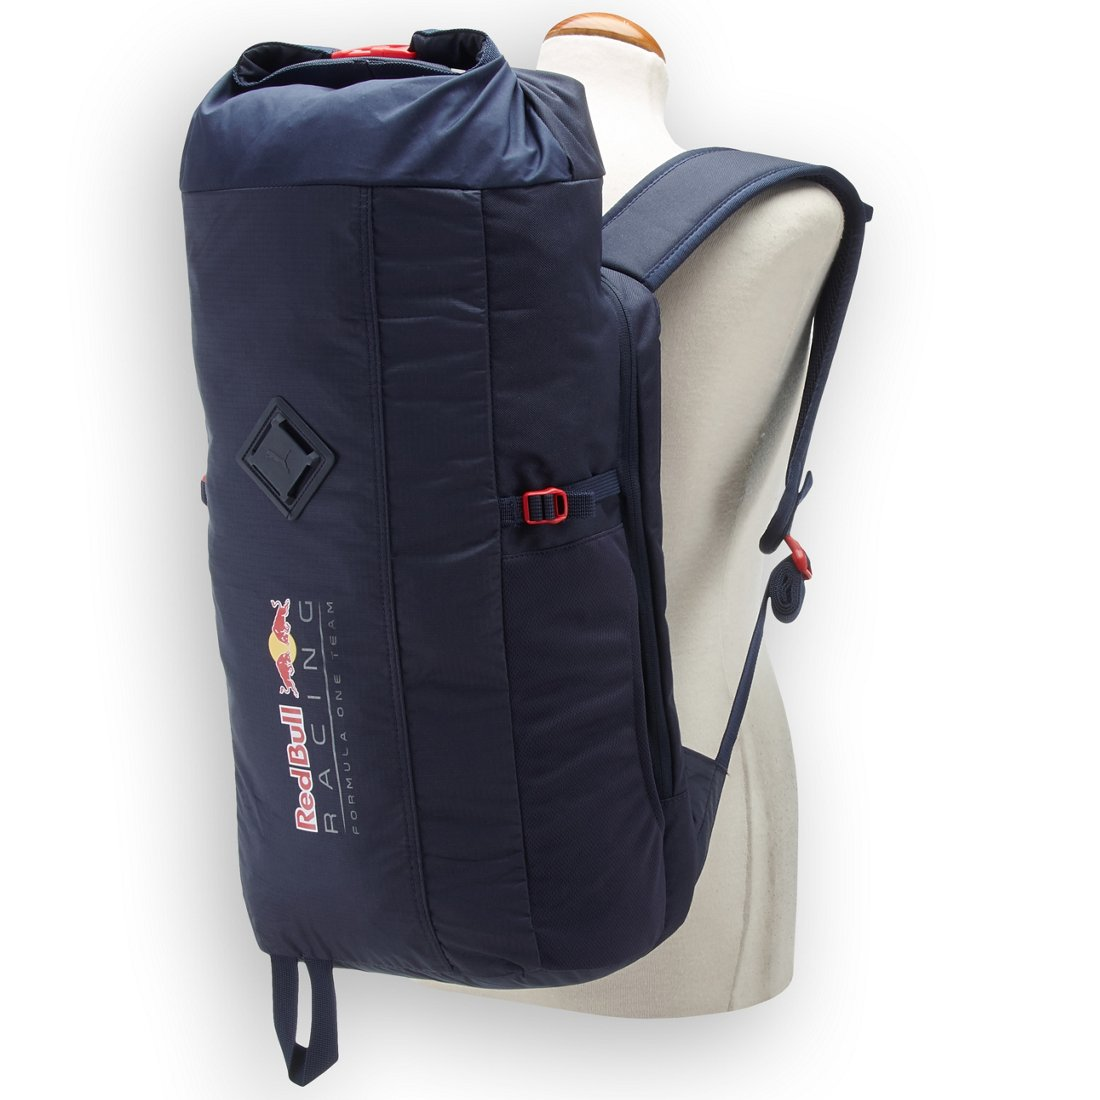 dfe525cc139be Puma Red Bull Racing Lifestyle Rucksack 54 cm - night sky-chinese red.  Previous